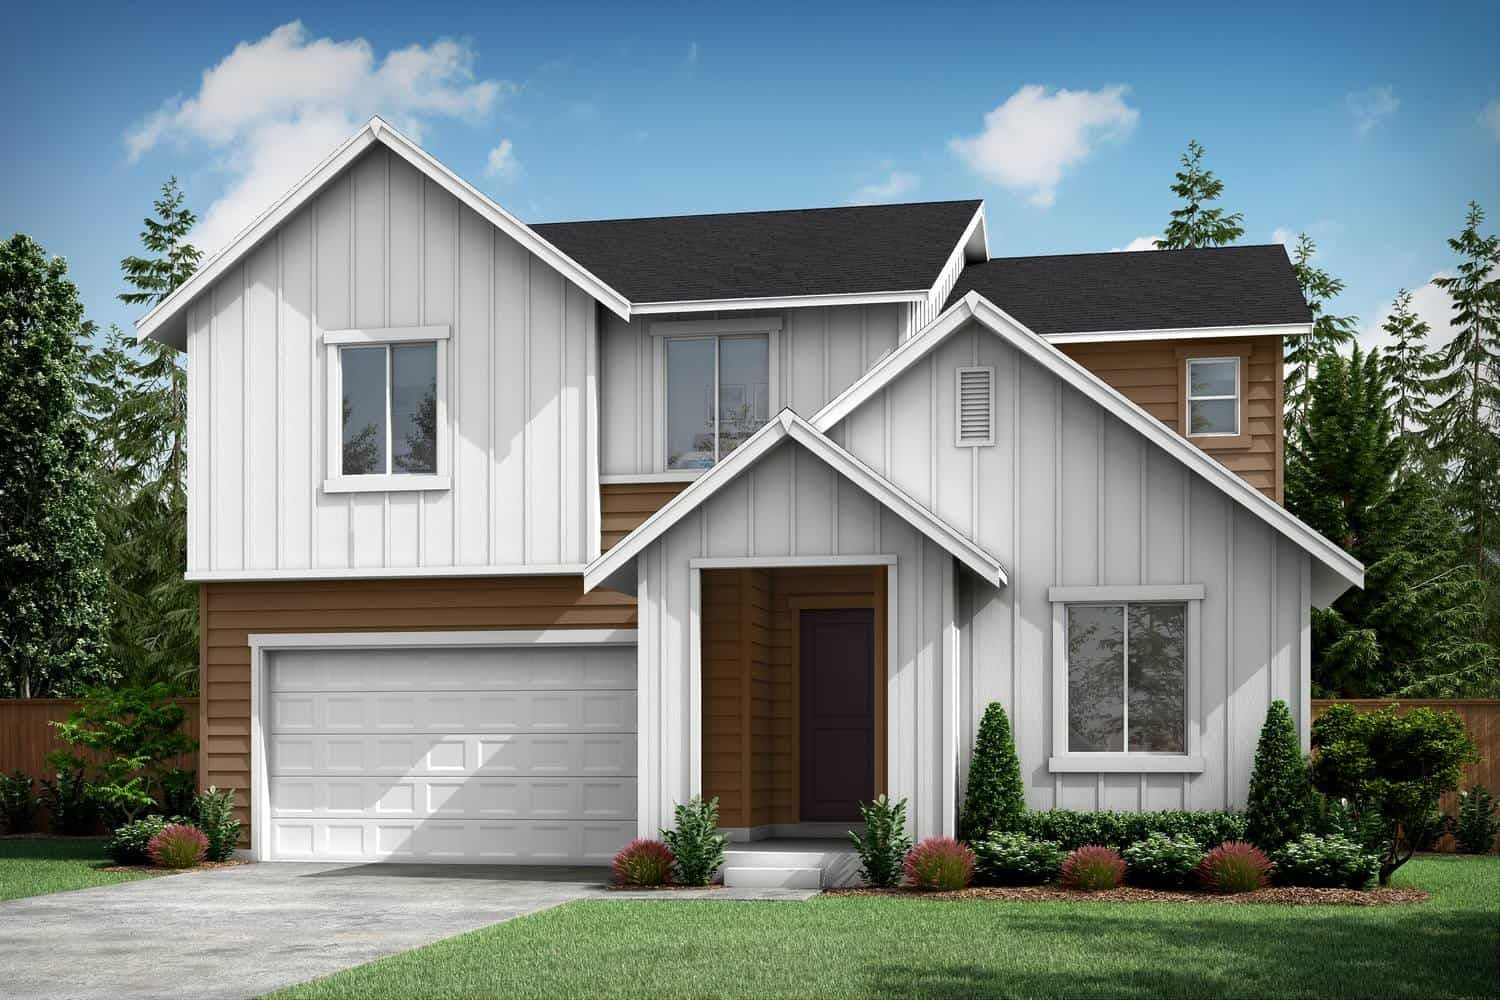 Exterior featured in the Plan A-260 By Tri Pointe Homes in Bremerton, WA